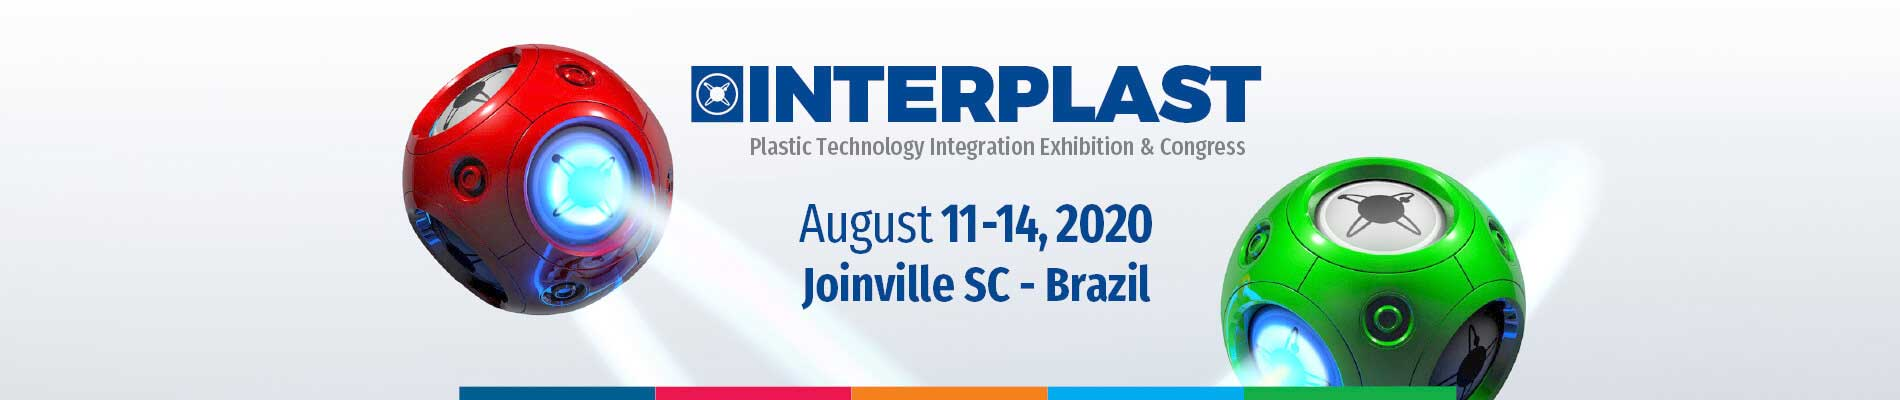 Interplast Banner